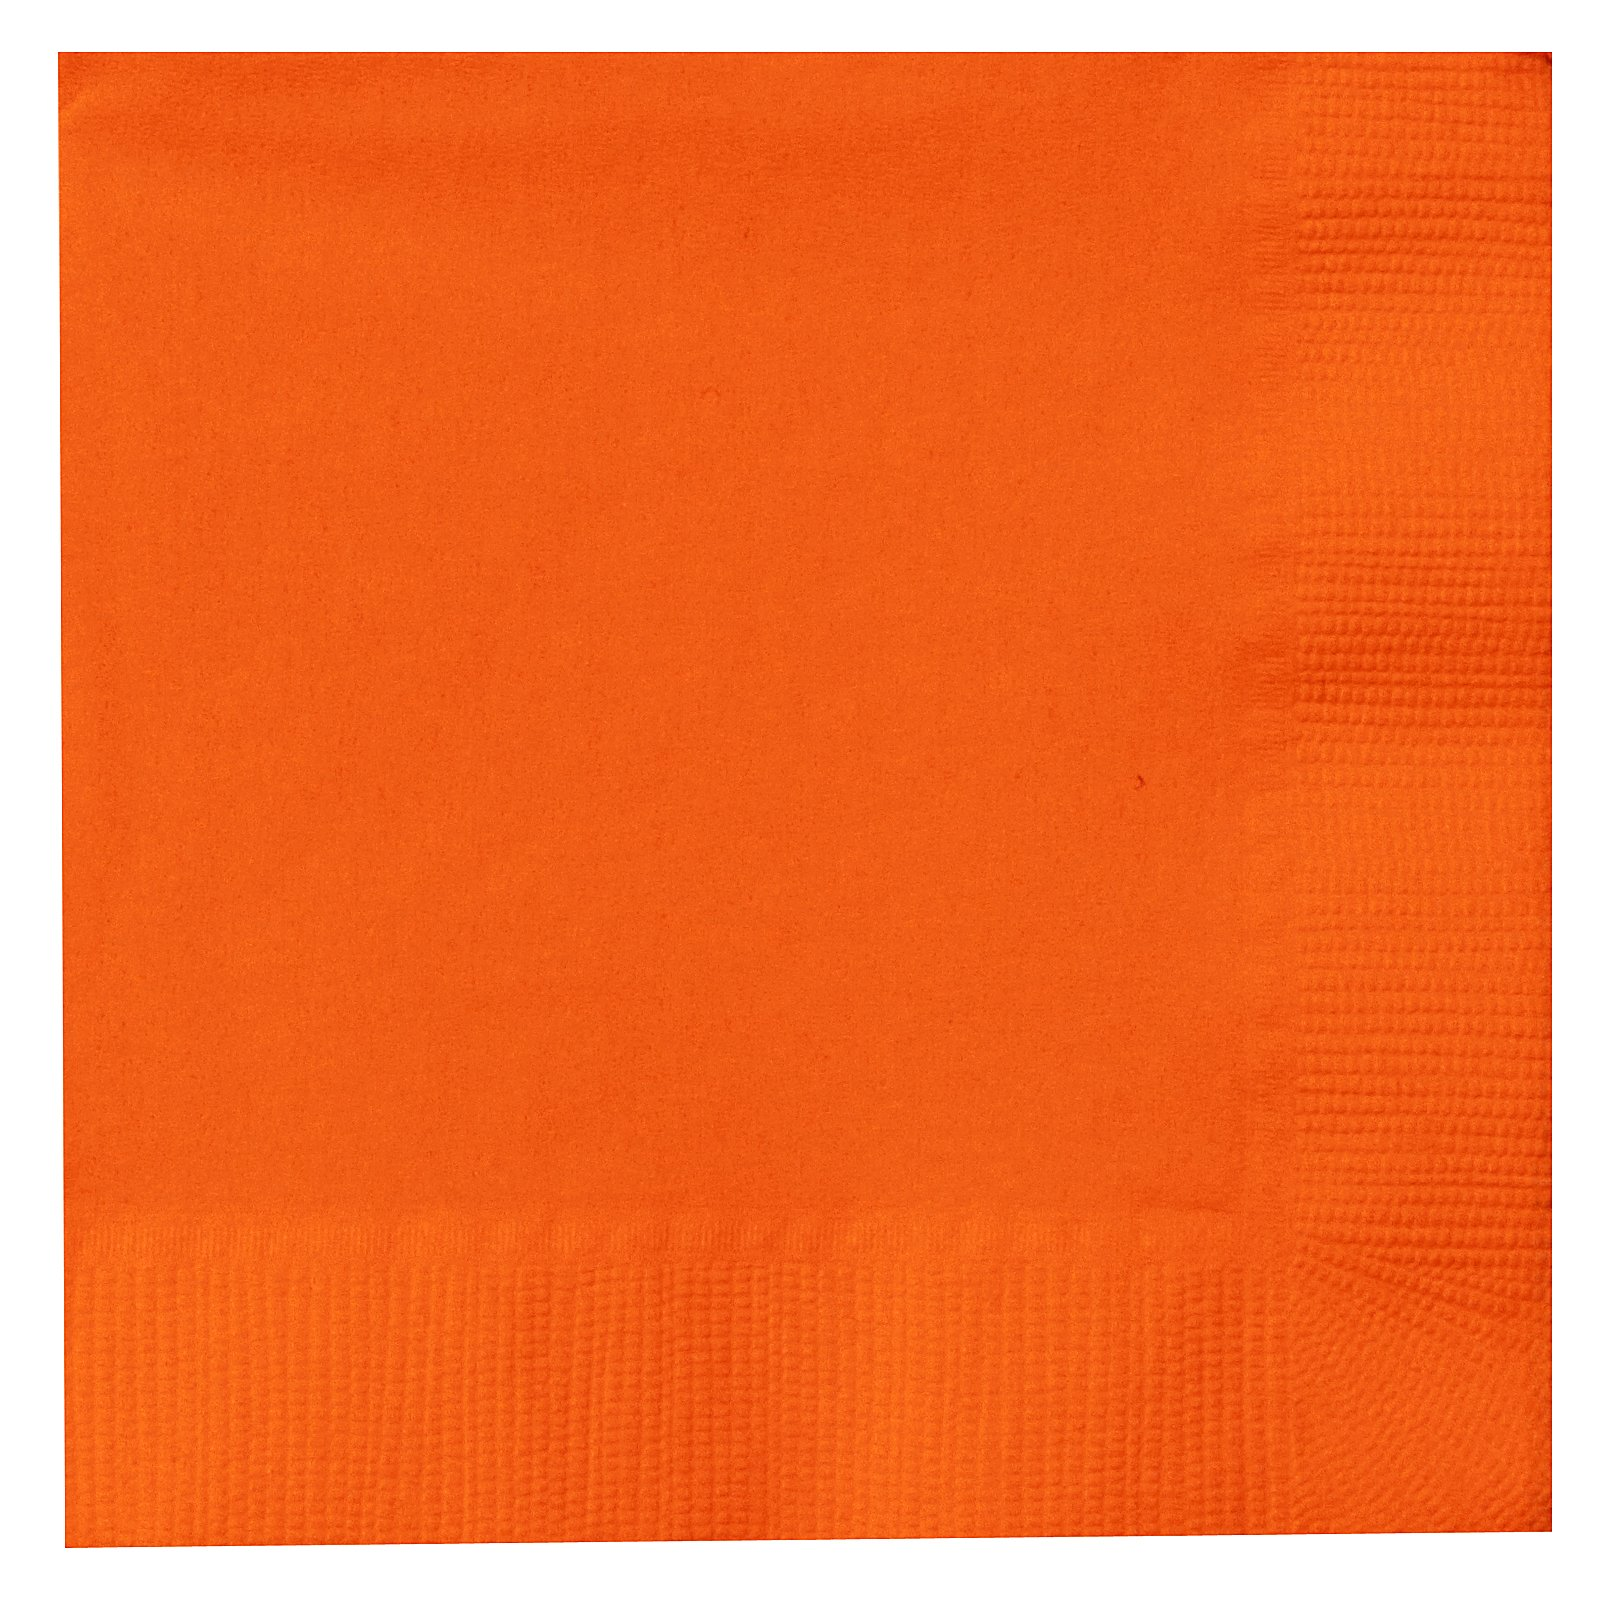 Sunkissed Orange (Orange) Beverage Napkins (50 count)